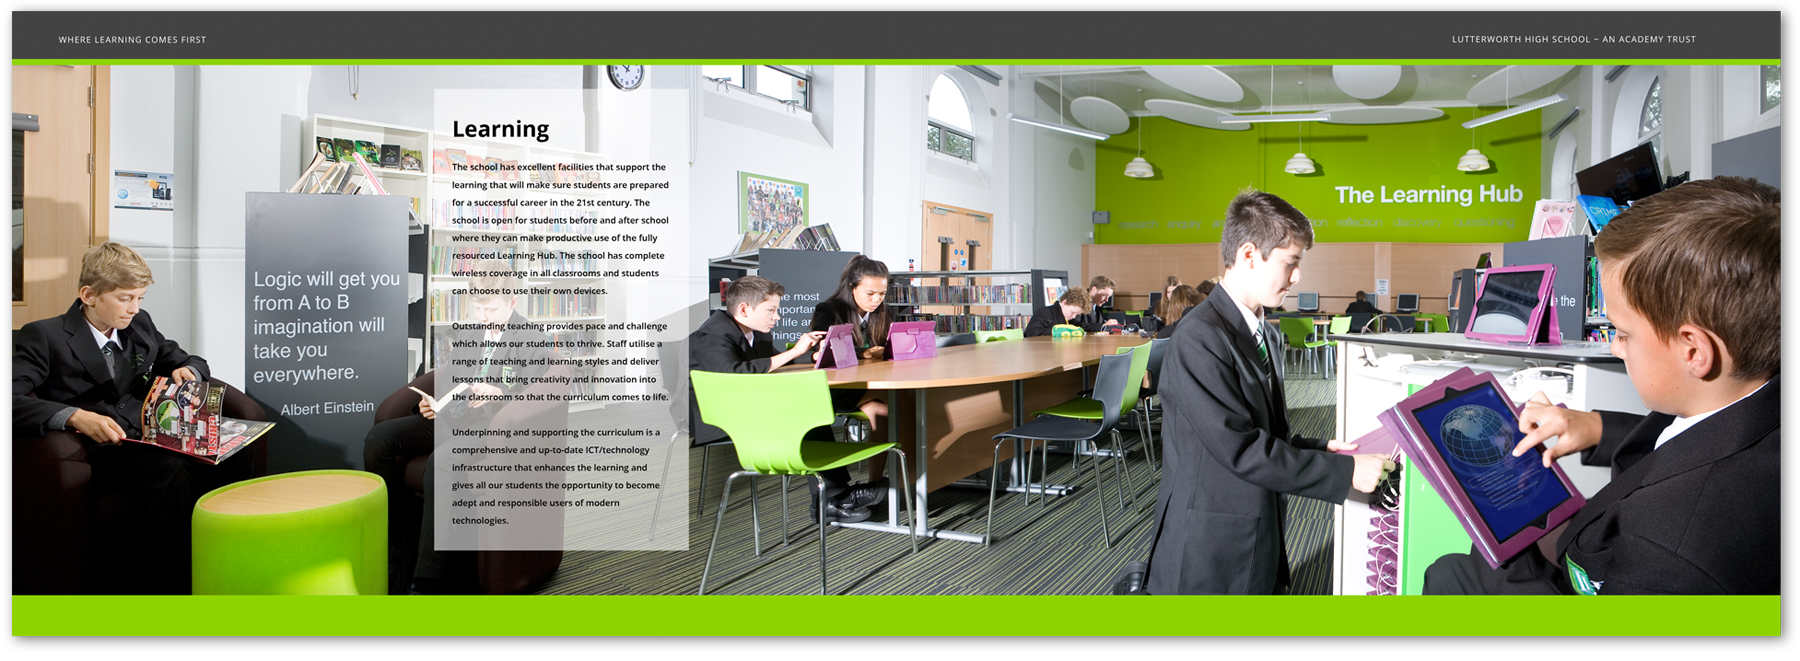 prospectus design panoramic photography learning hub